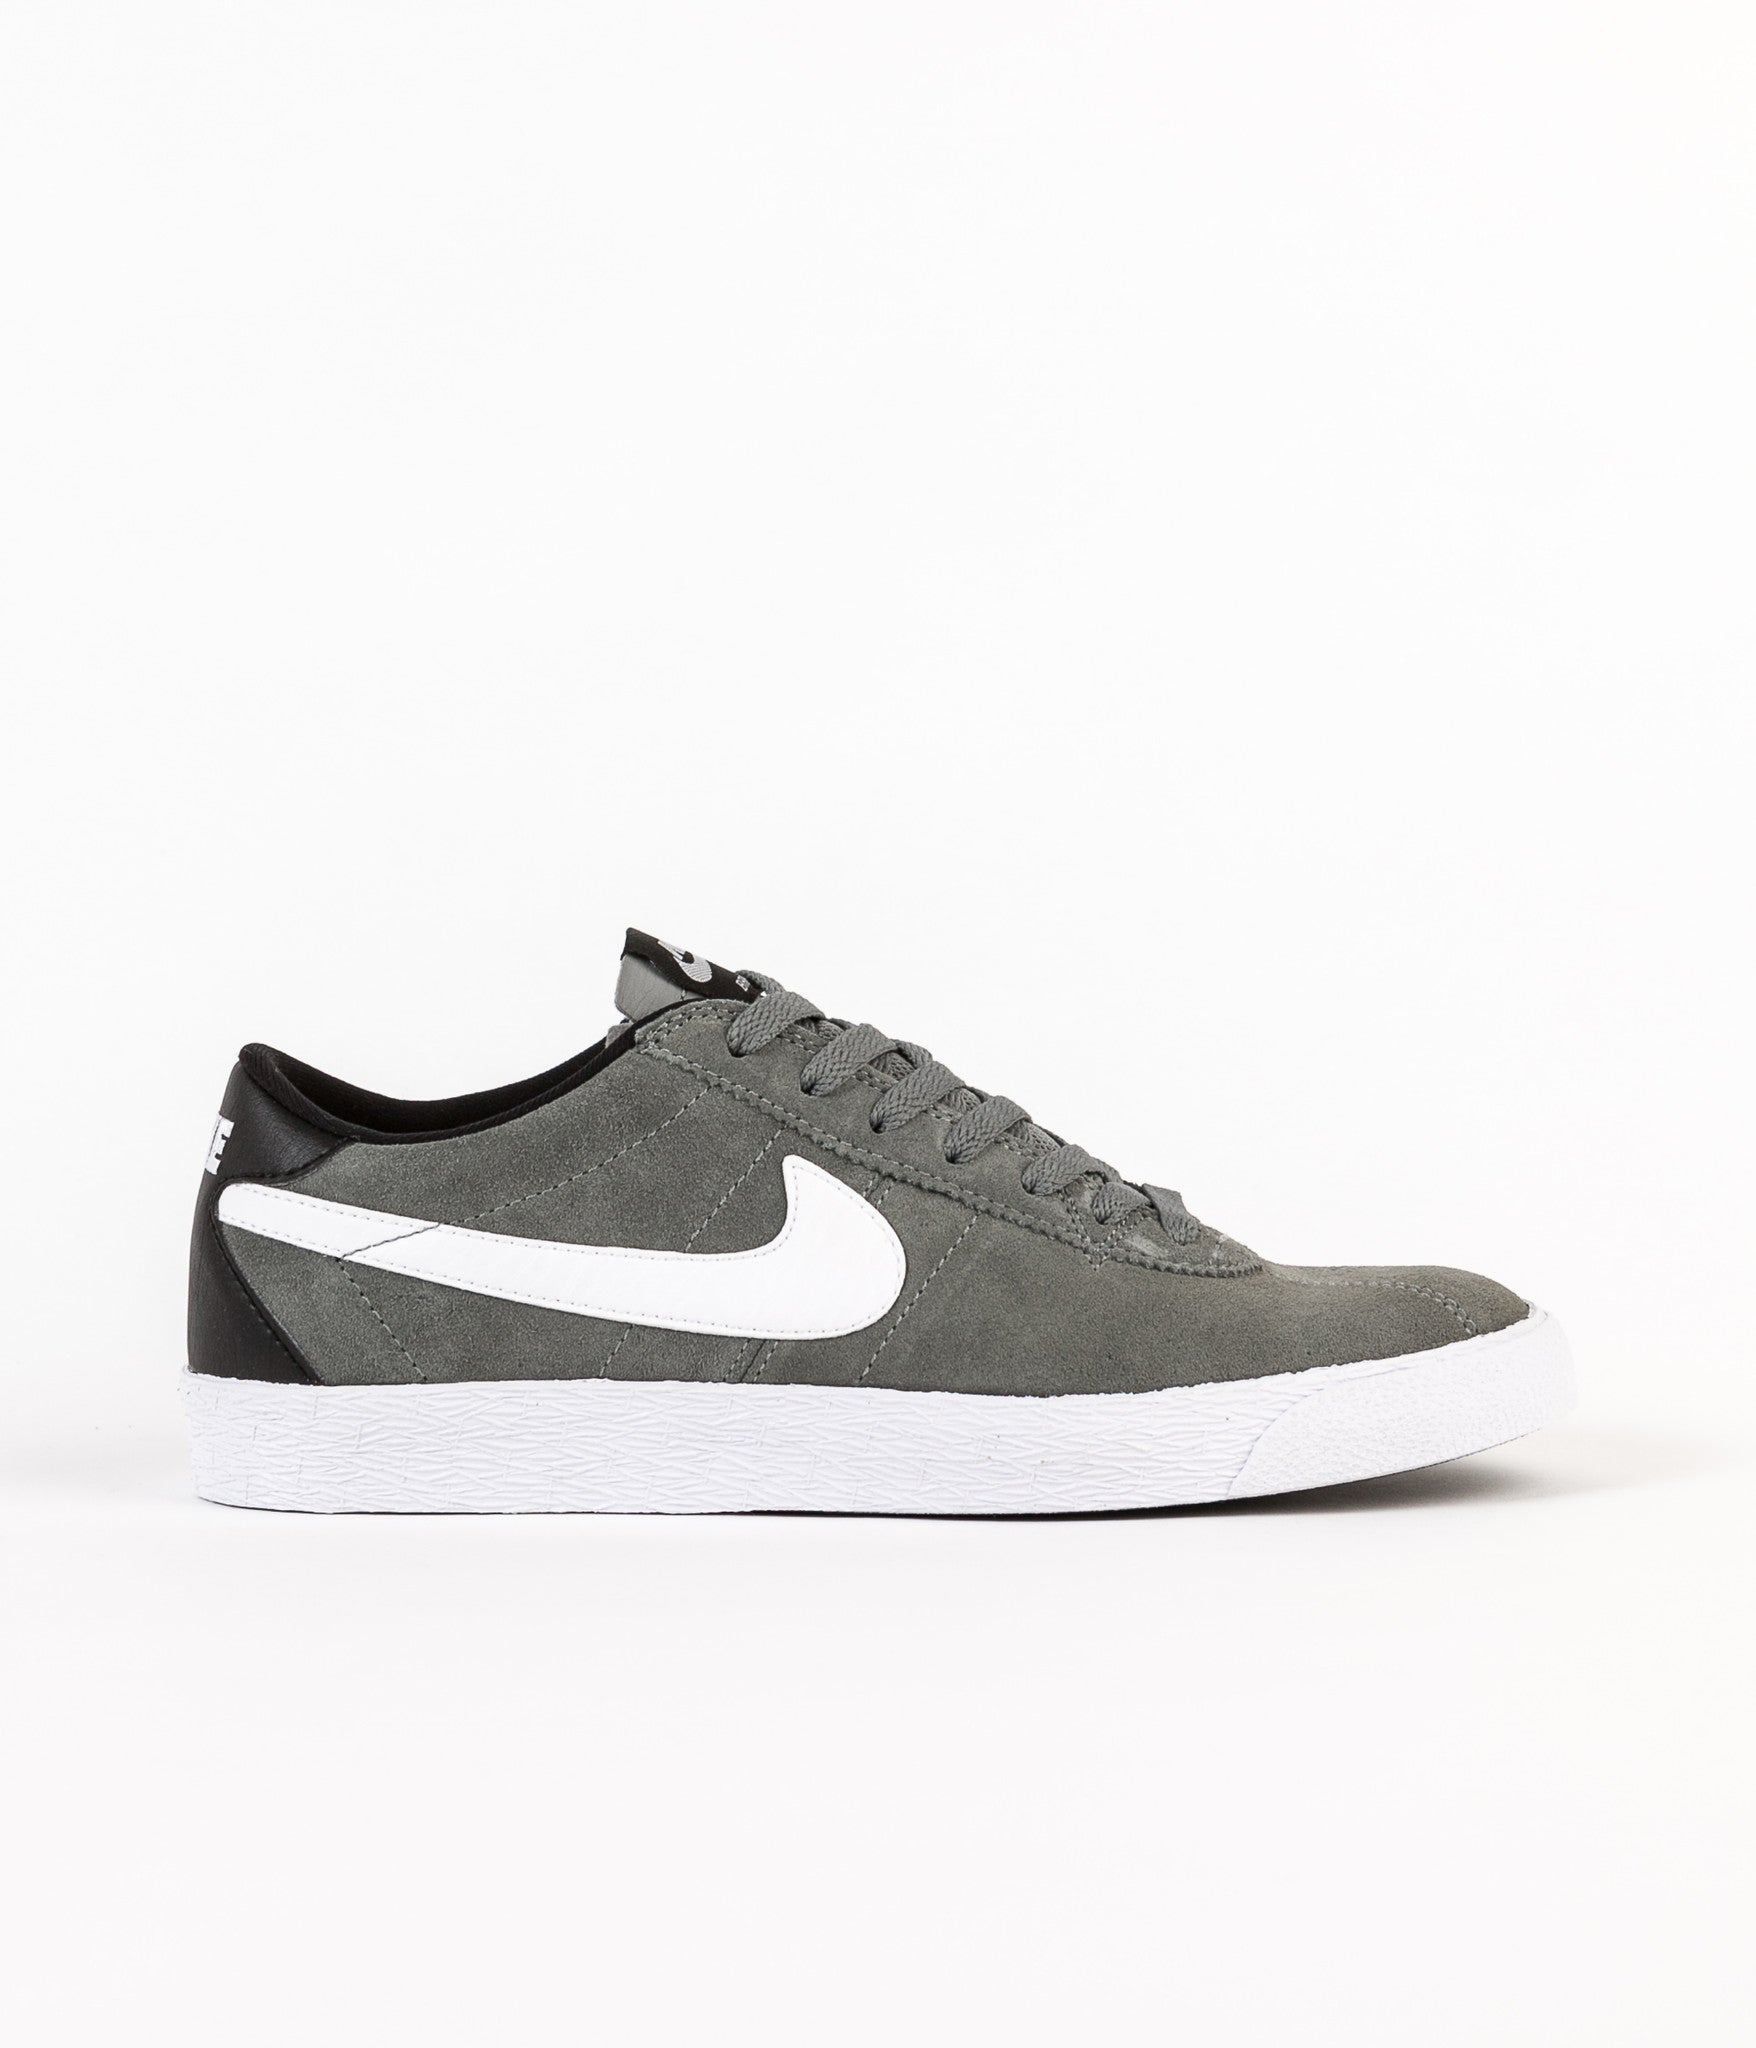 Nike SB Bruin Shoes - Tumbled Grey / White - White - Black